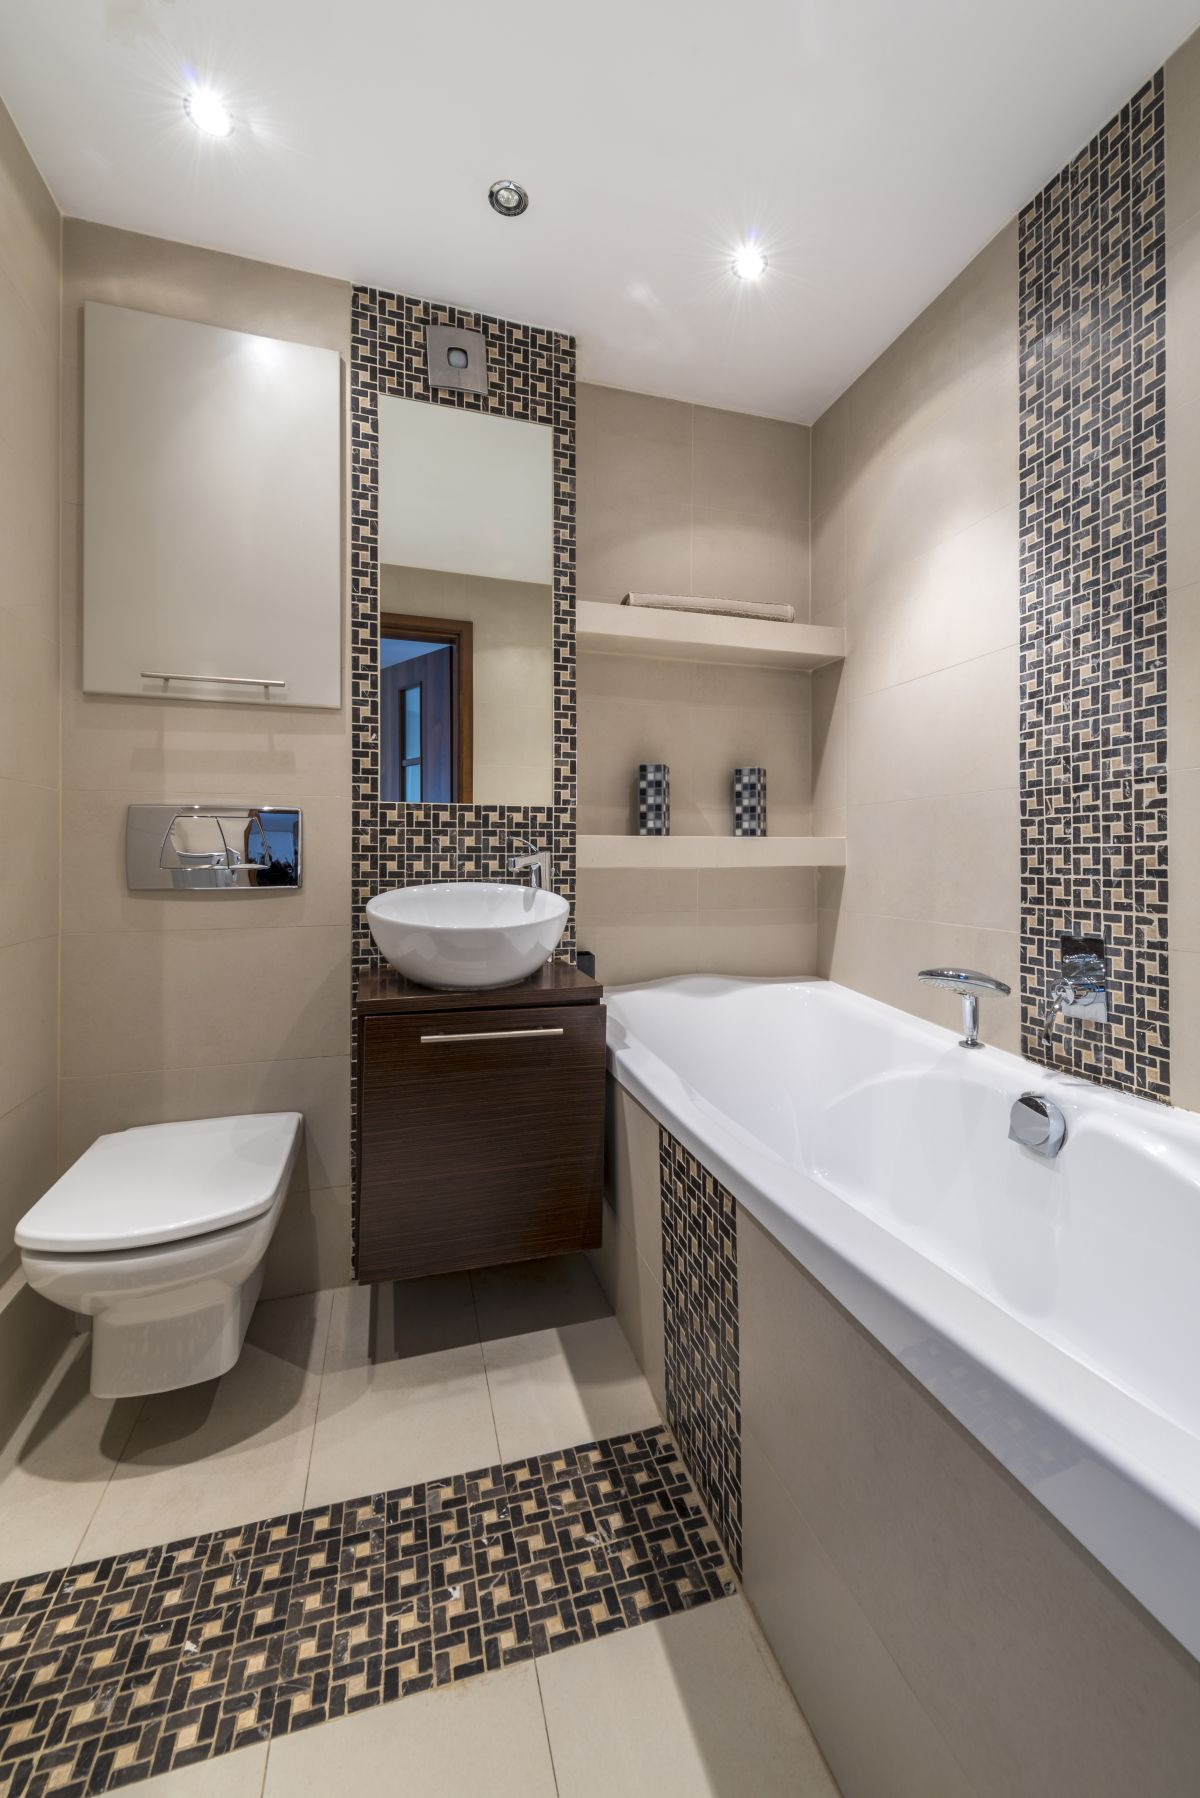 Size Matters Bathroom Renovation Costs For Your Size Bath: average cost for small bathroom remodel